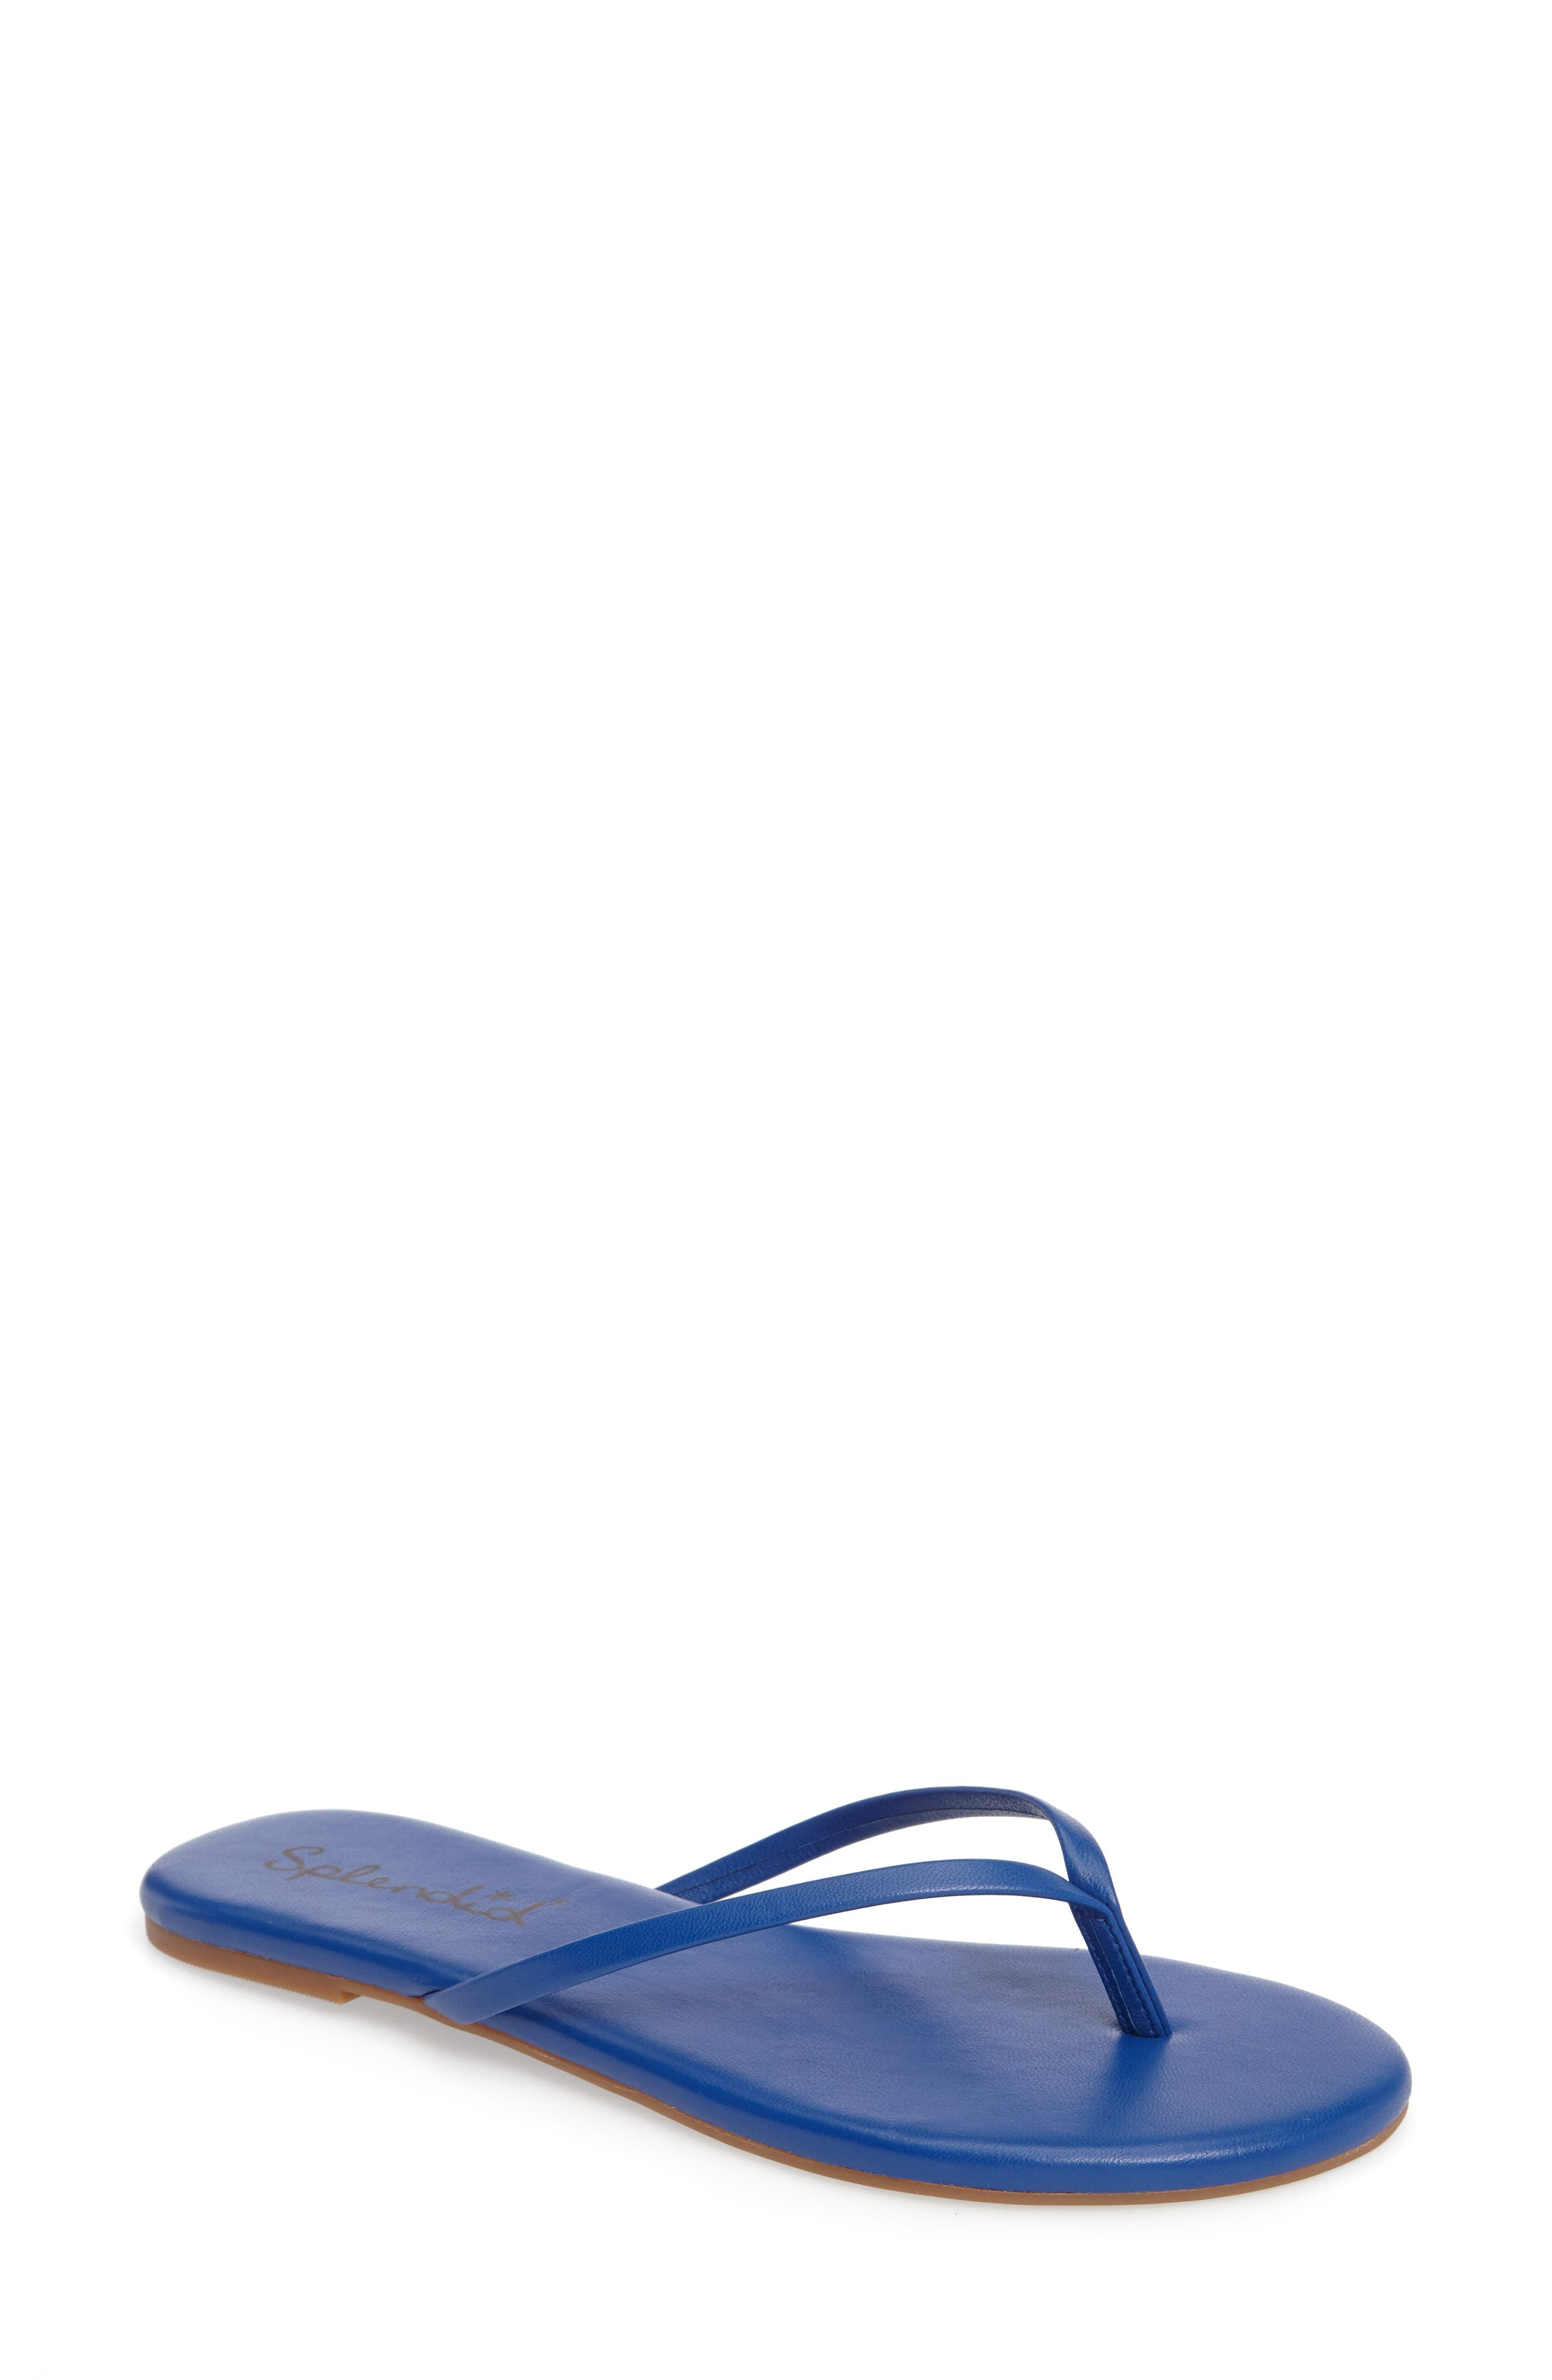 Splendid 'Madrid' Flip Flop